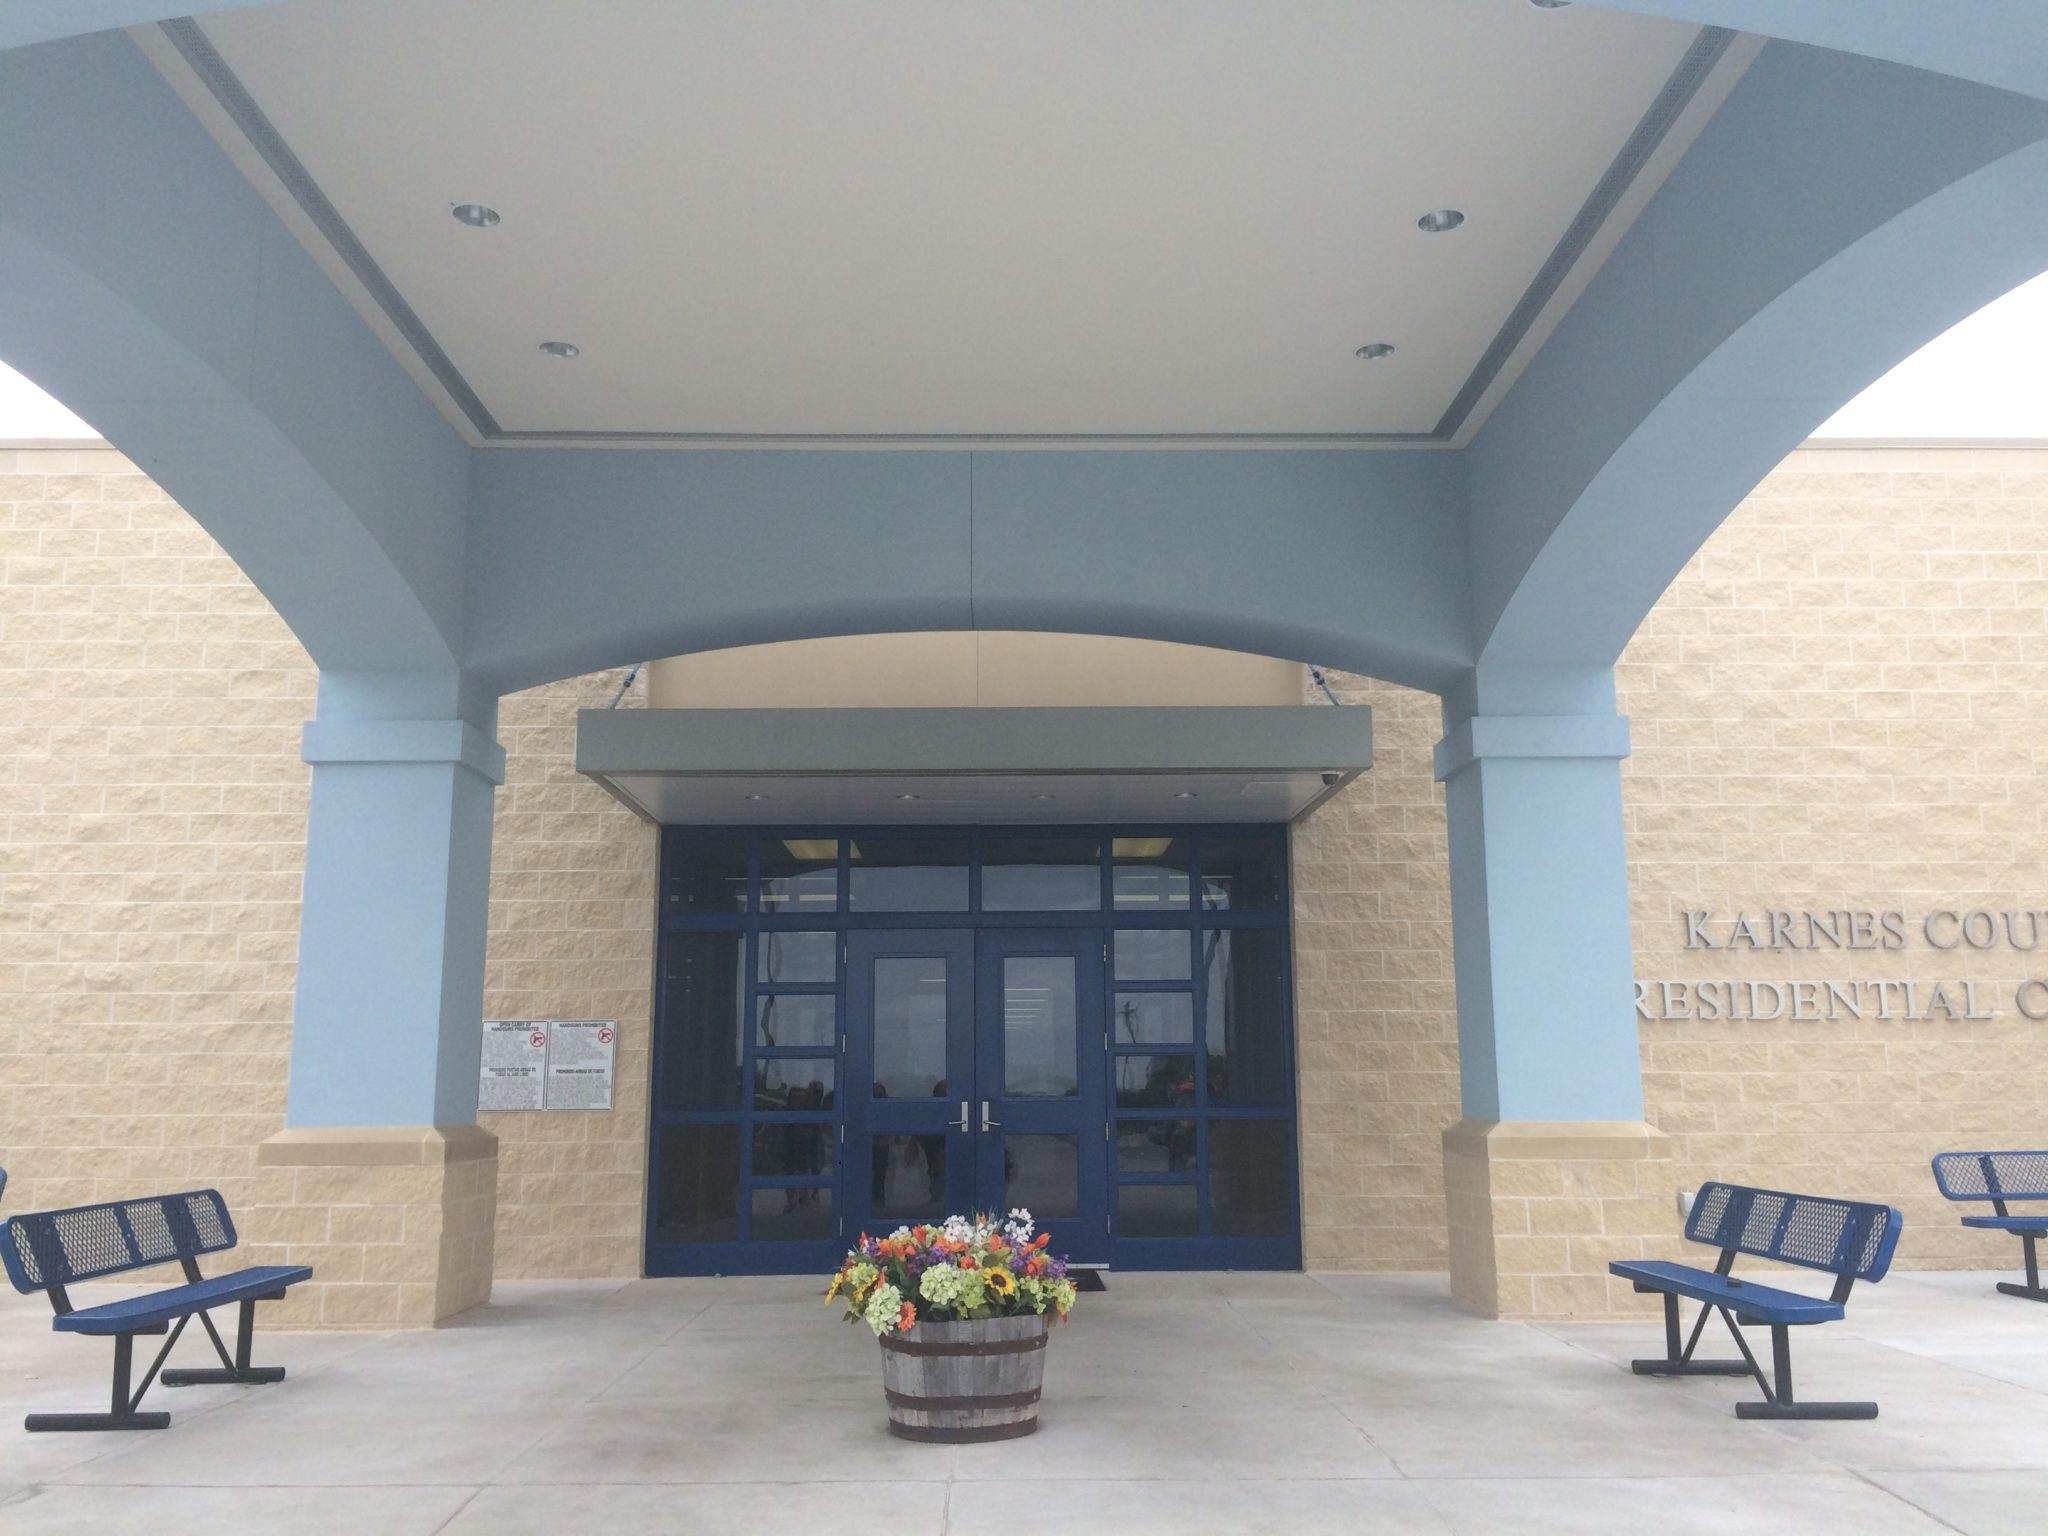 The entrance to Texas' Karnes County Residential Center, a 500-bed immigrant detention facility.